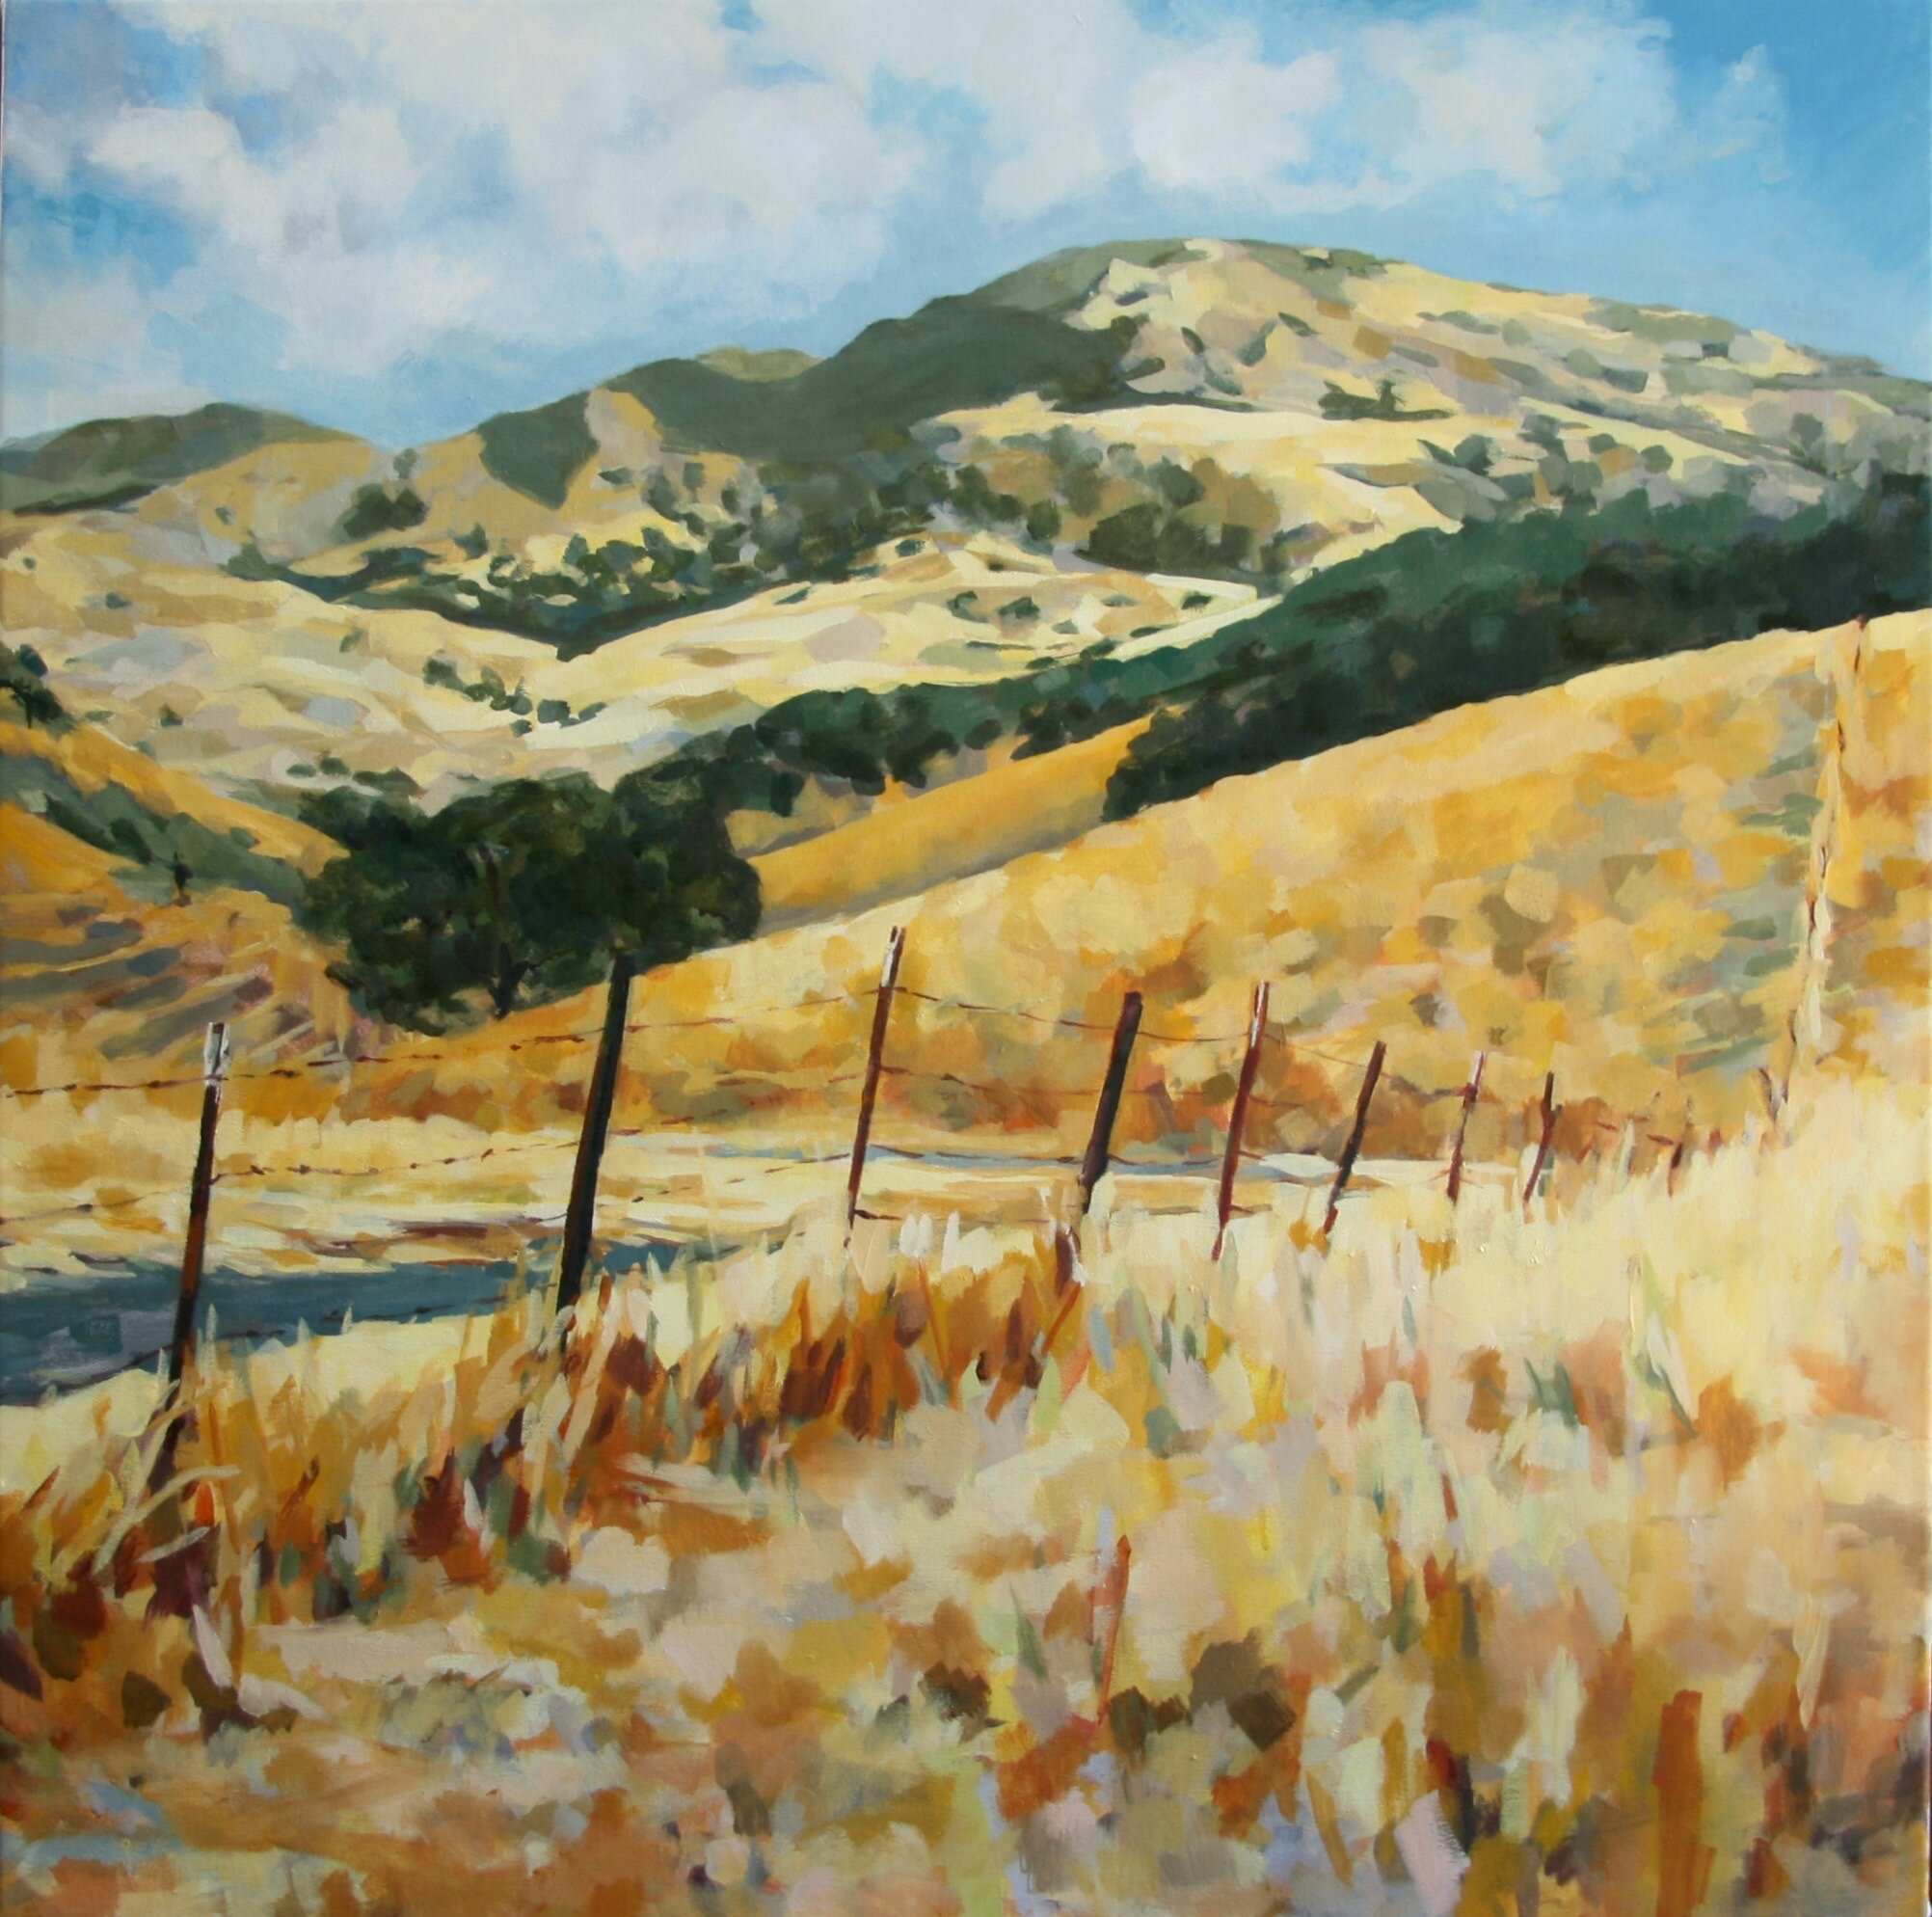 """'Mt. Diablo I'  2015  36"""" x 36""""  water soluble oil on canvas  sold"""